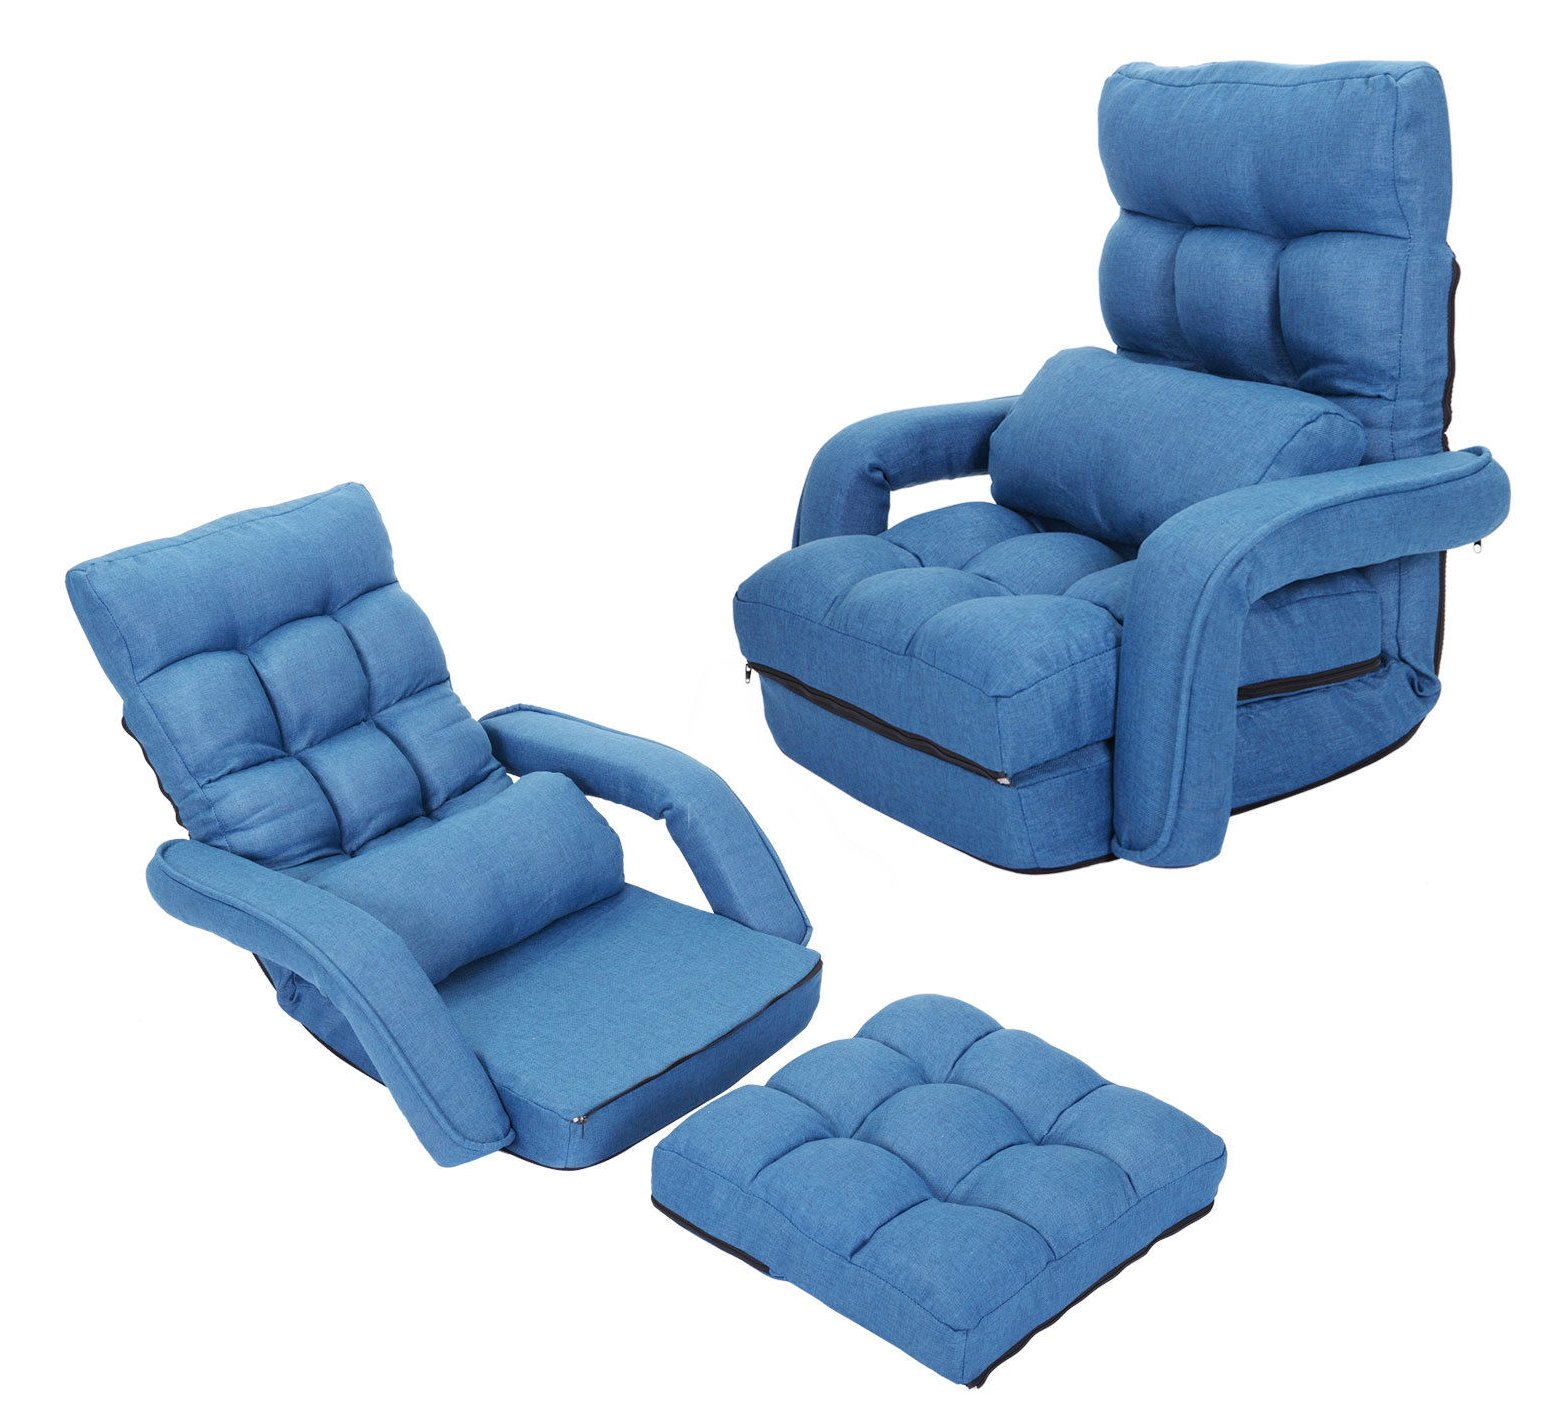 Folding Floor Sofa Reclining Recliner Game Chair w/ Armrest Lounge Sofa Couch Bedding   Blue